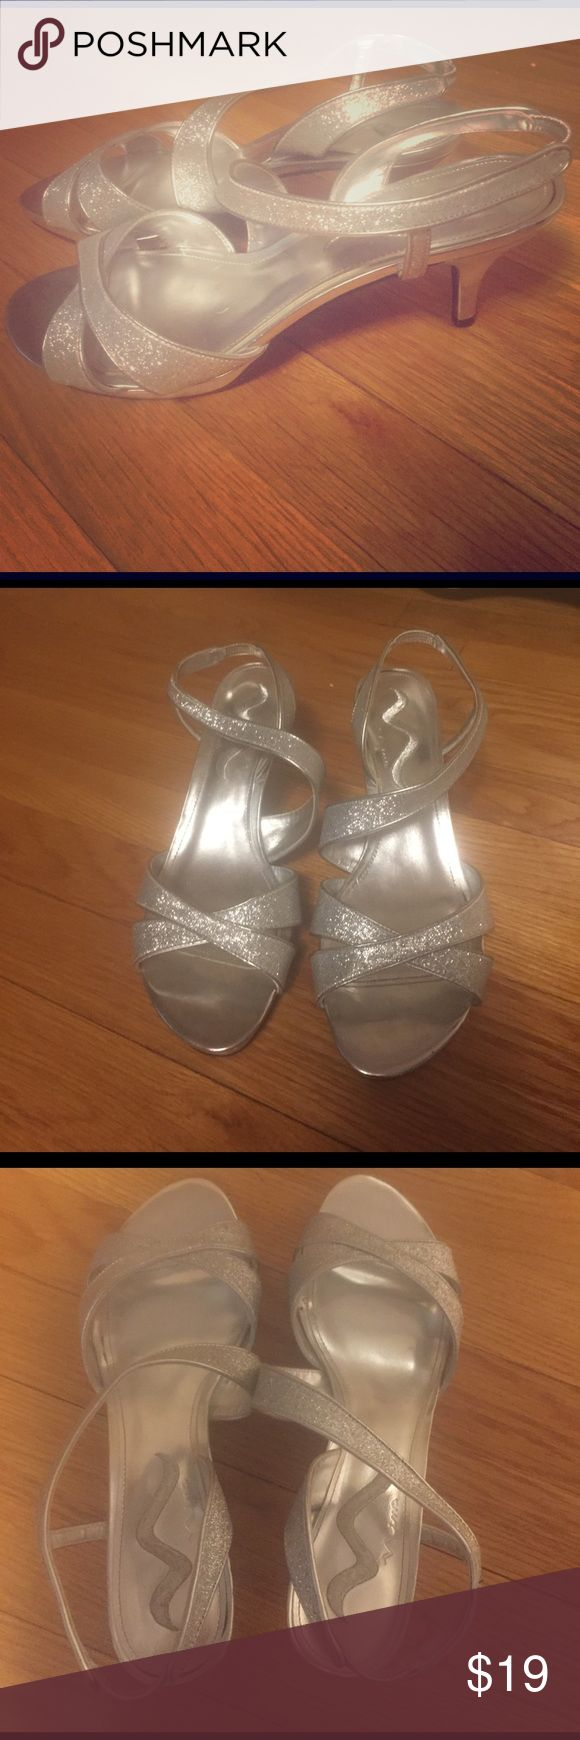 Low heel silver shoes Perfect for a wedding! These were worn only once ! Nina Shoes Sandals